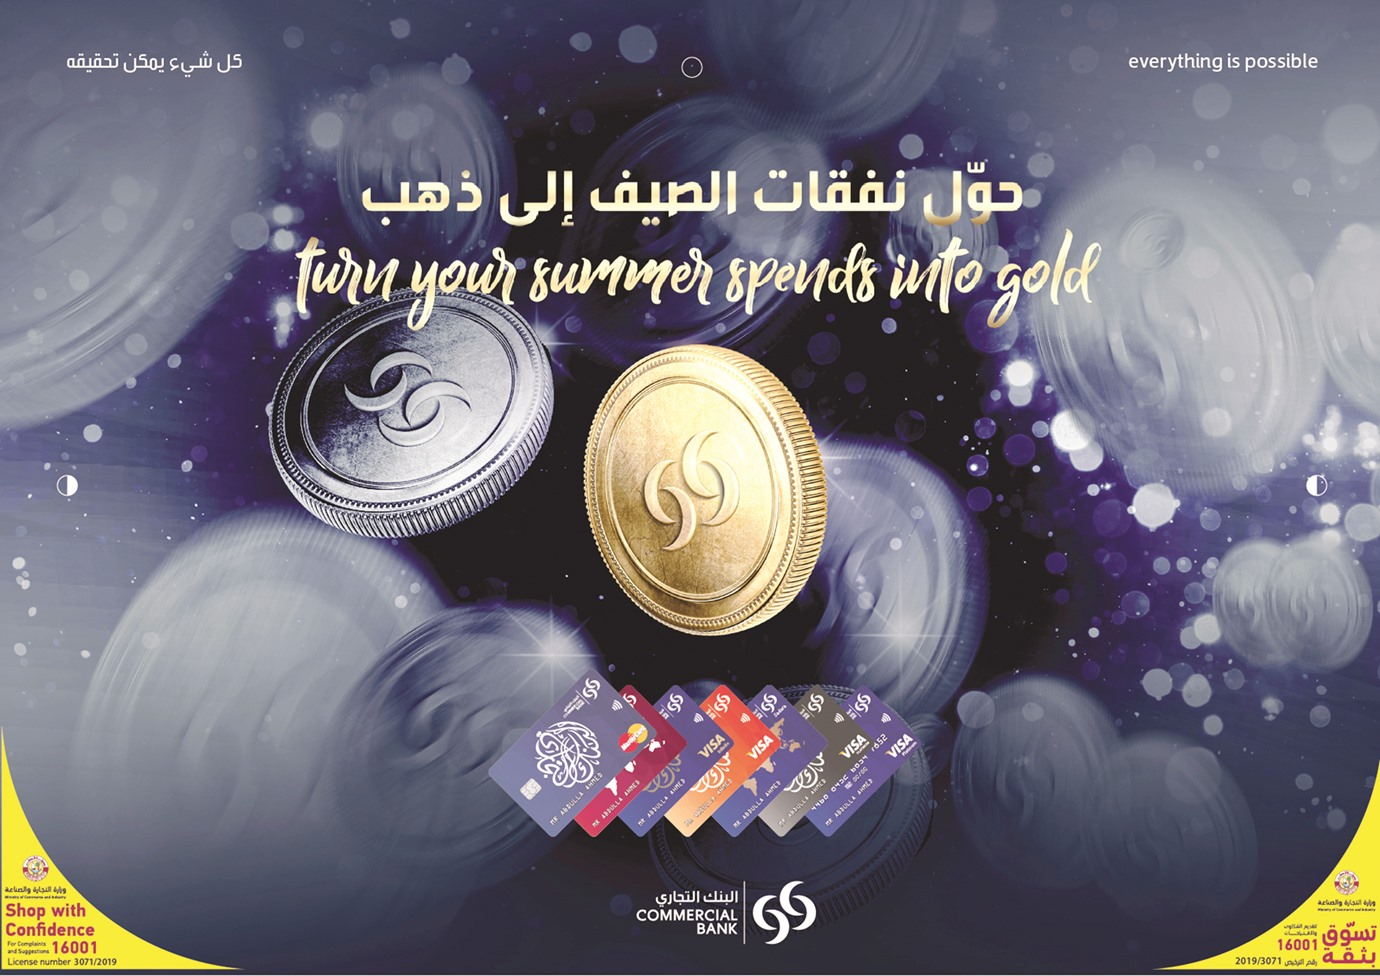 CB launches summer gold campaign for credit/debit card users